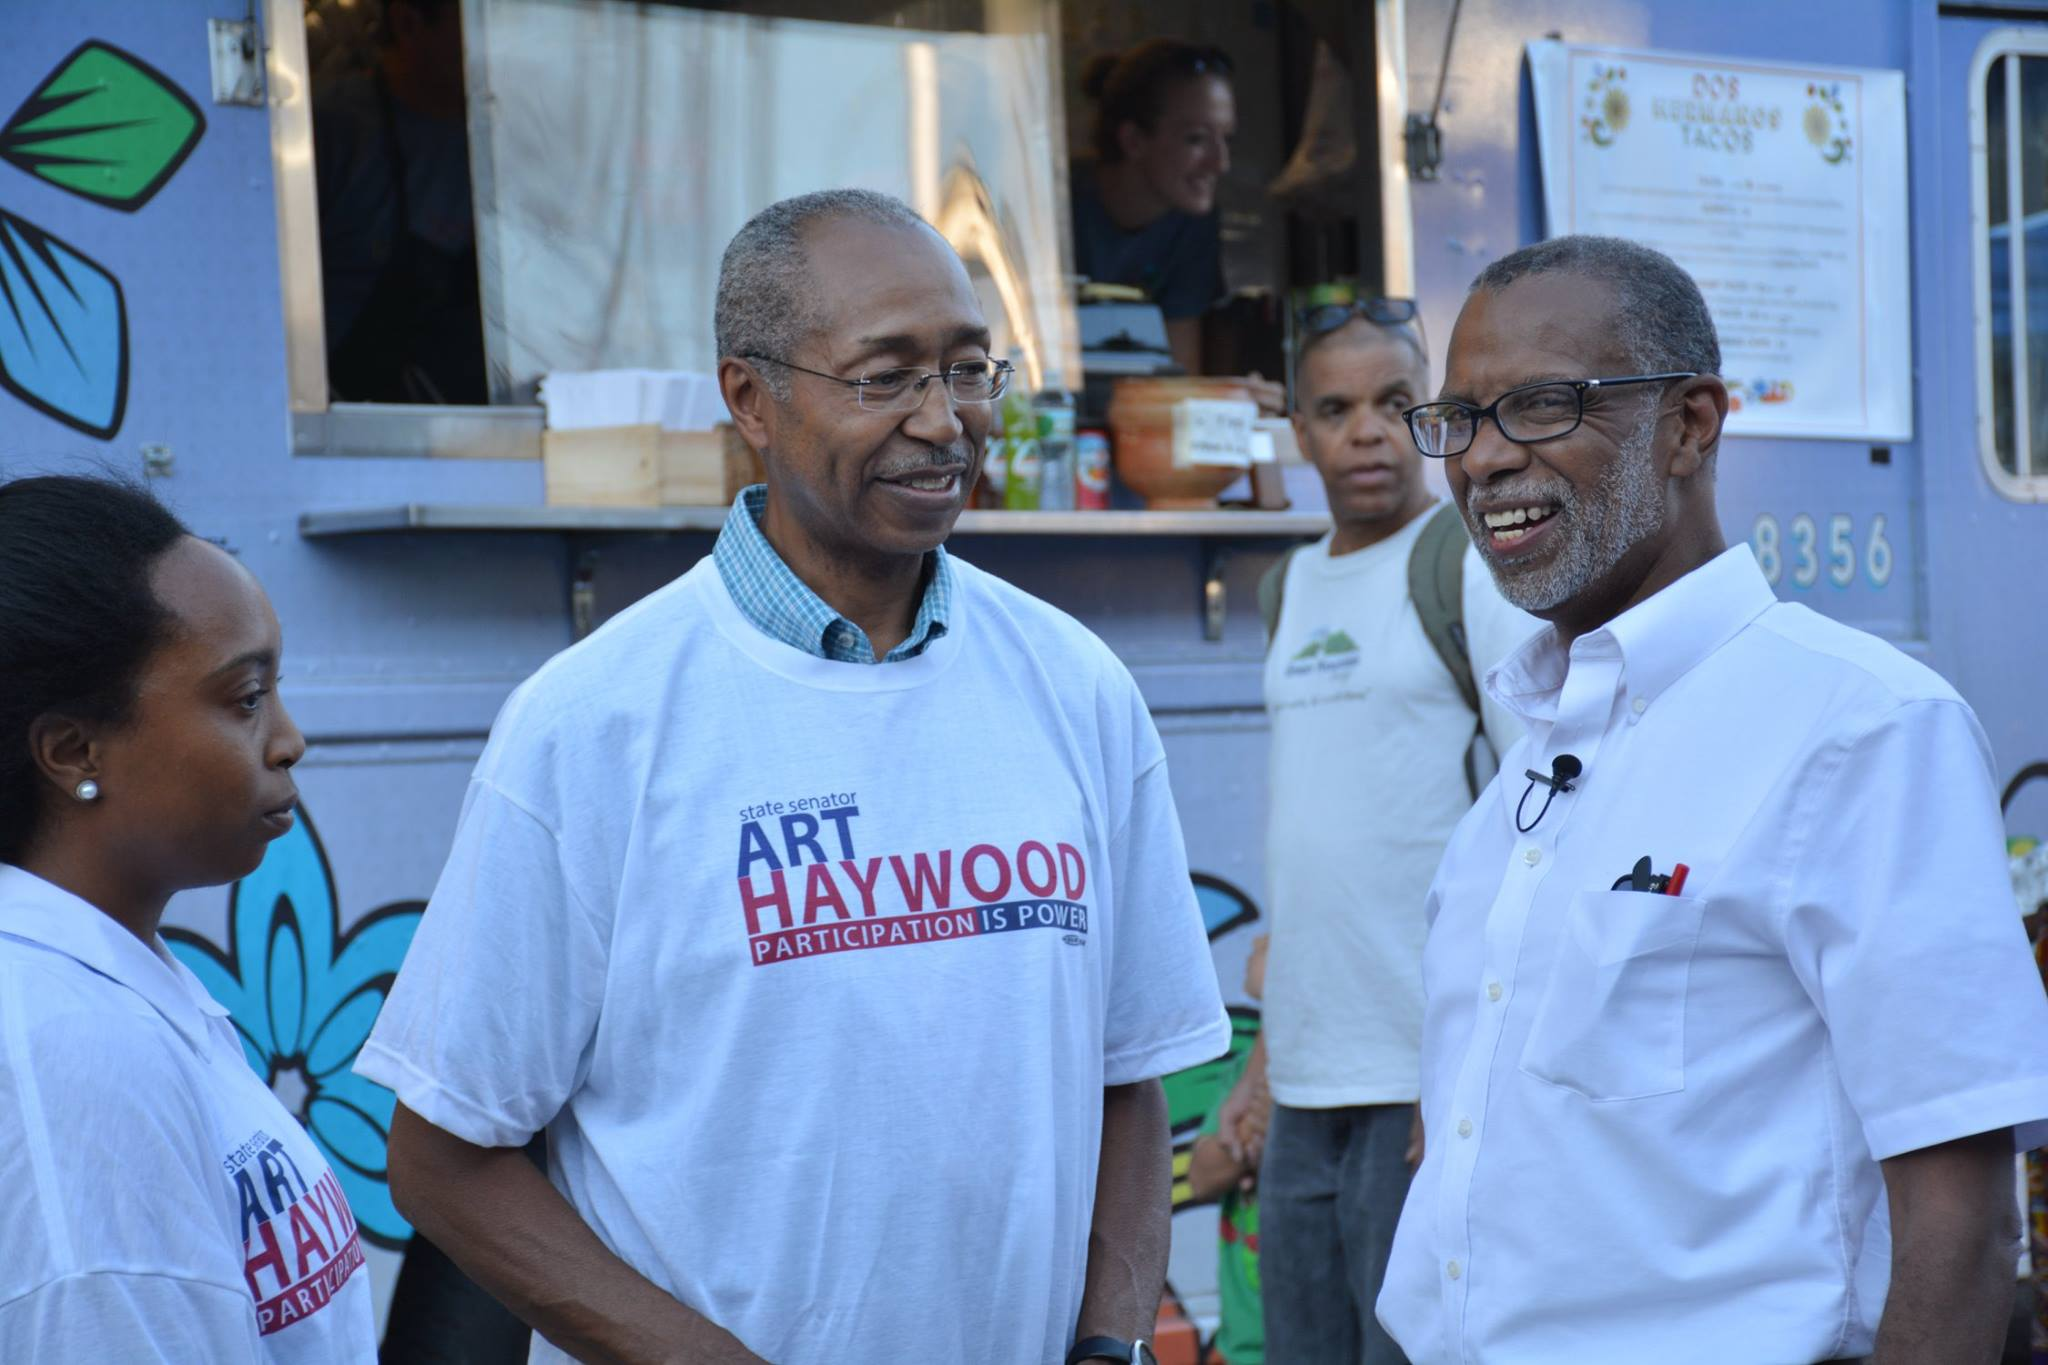 September 17, 2015: Speaking with Volunteers at the Mt. Airy Street Fare